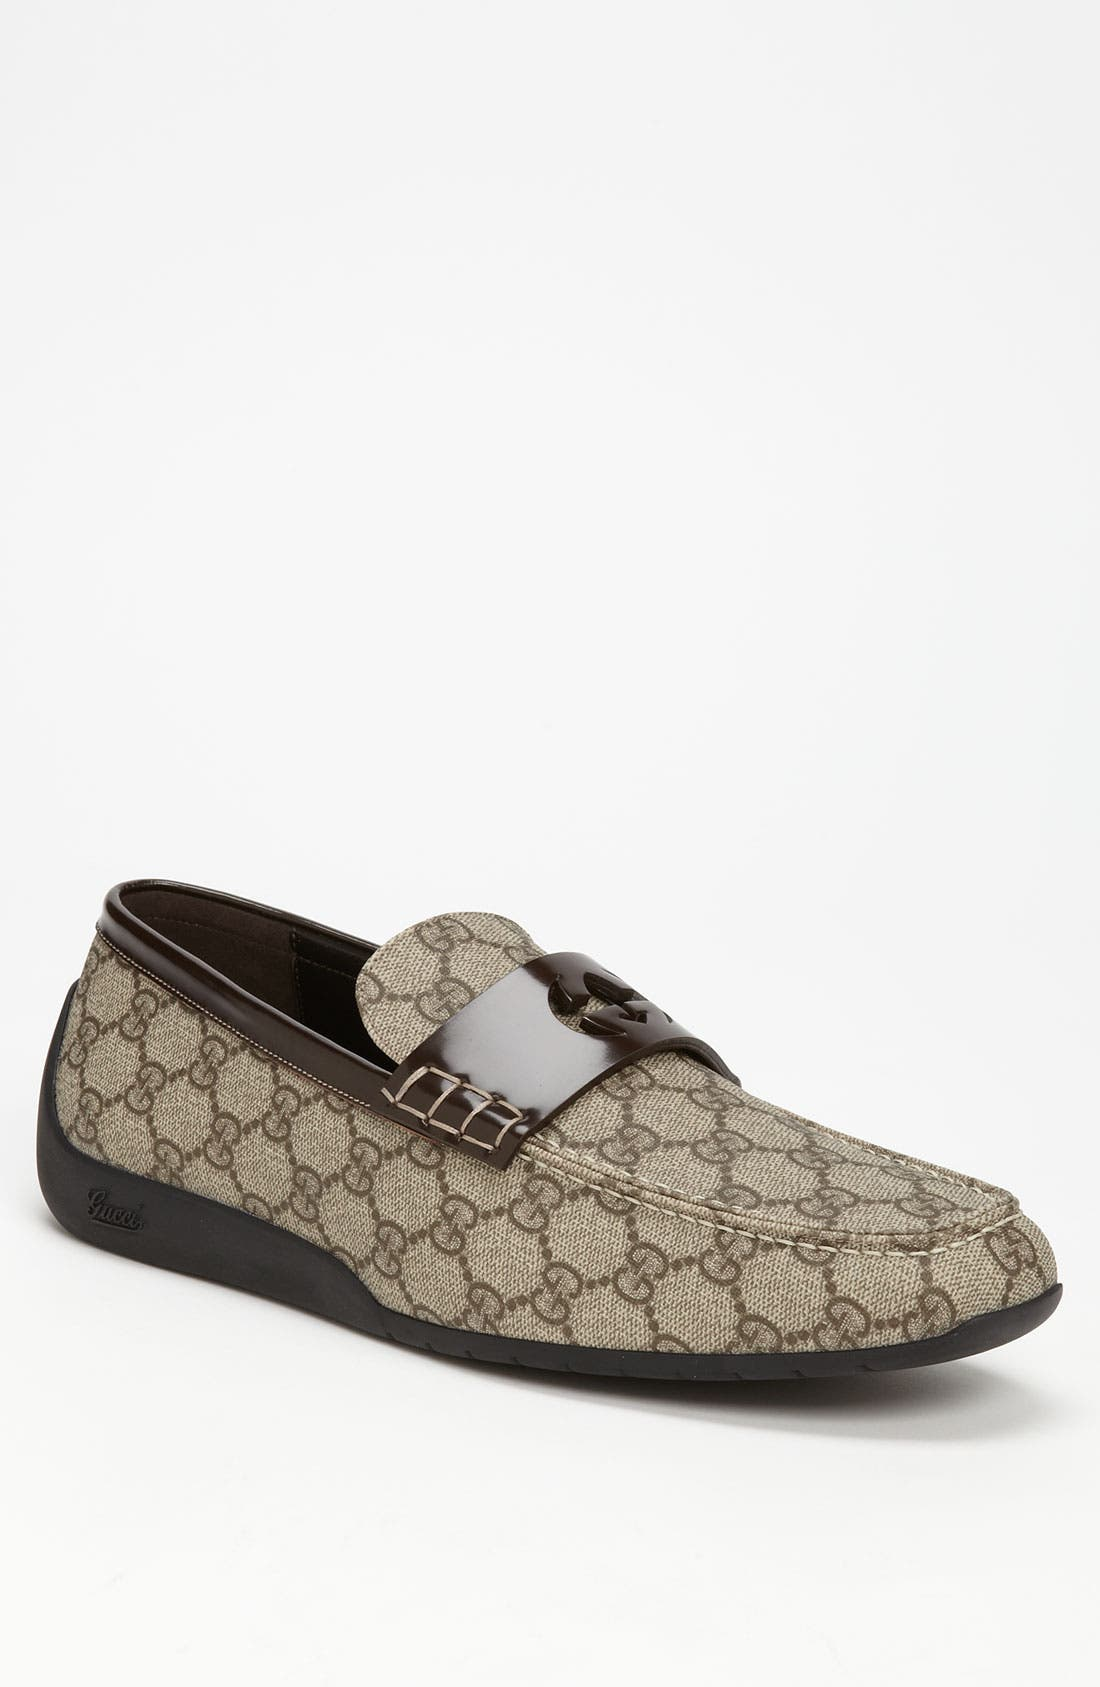 Main Image - Gucci 'Silverstone' Driving Shoe